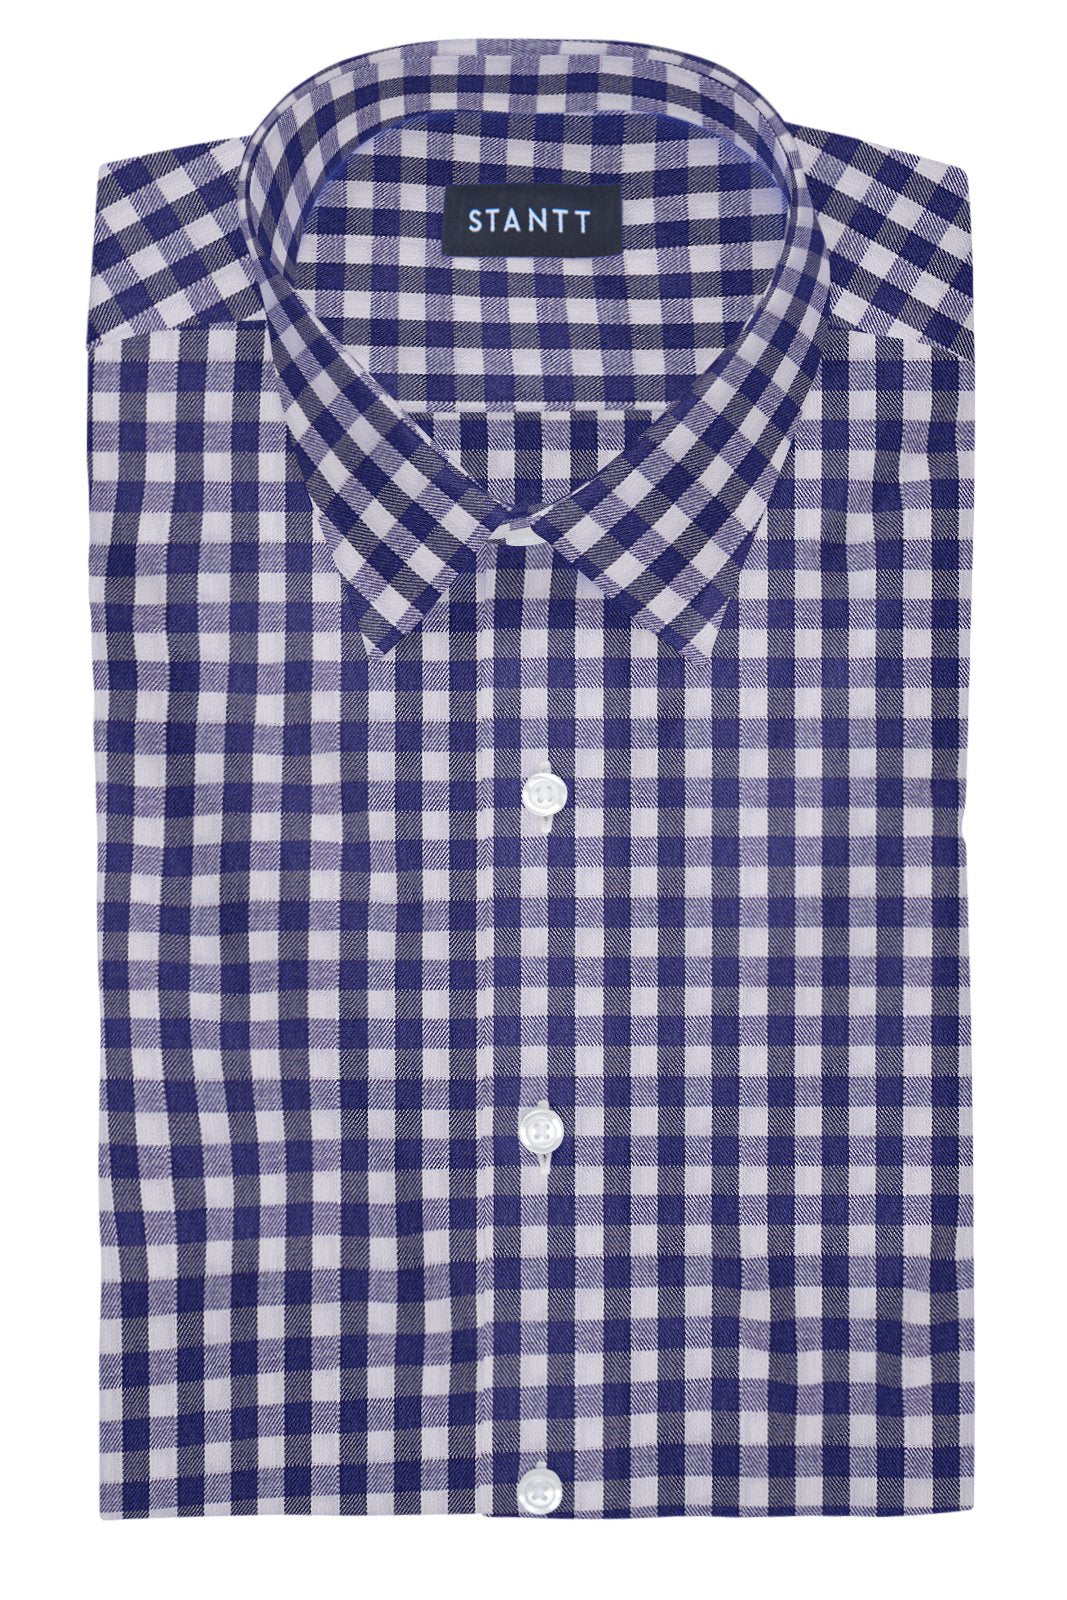 Performance Indigo Gingham: Semi-Spread Collar, Barrel Cuff